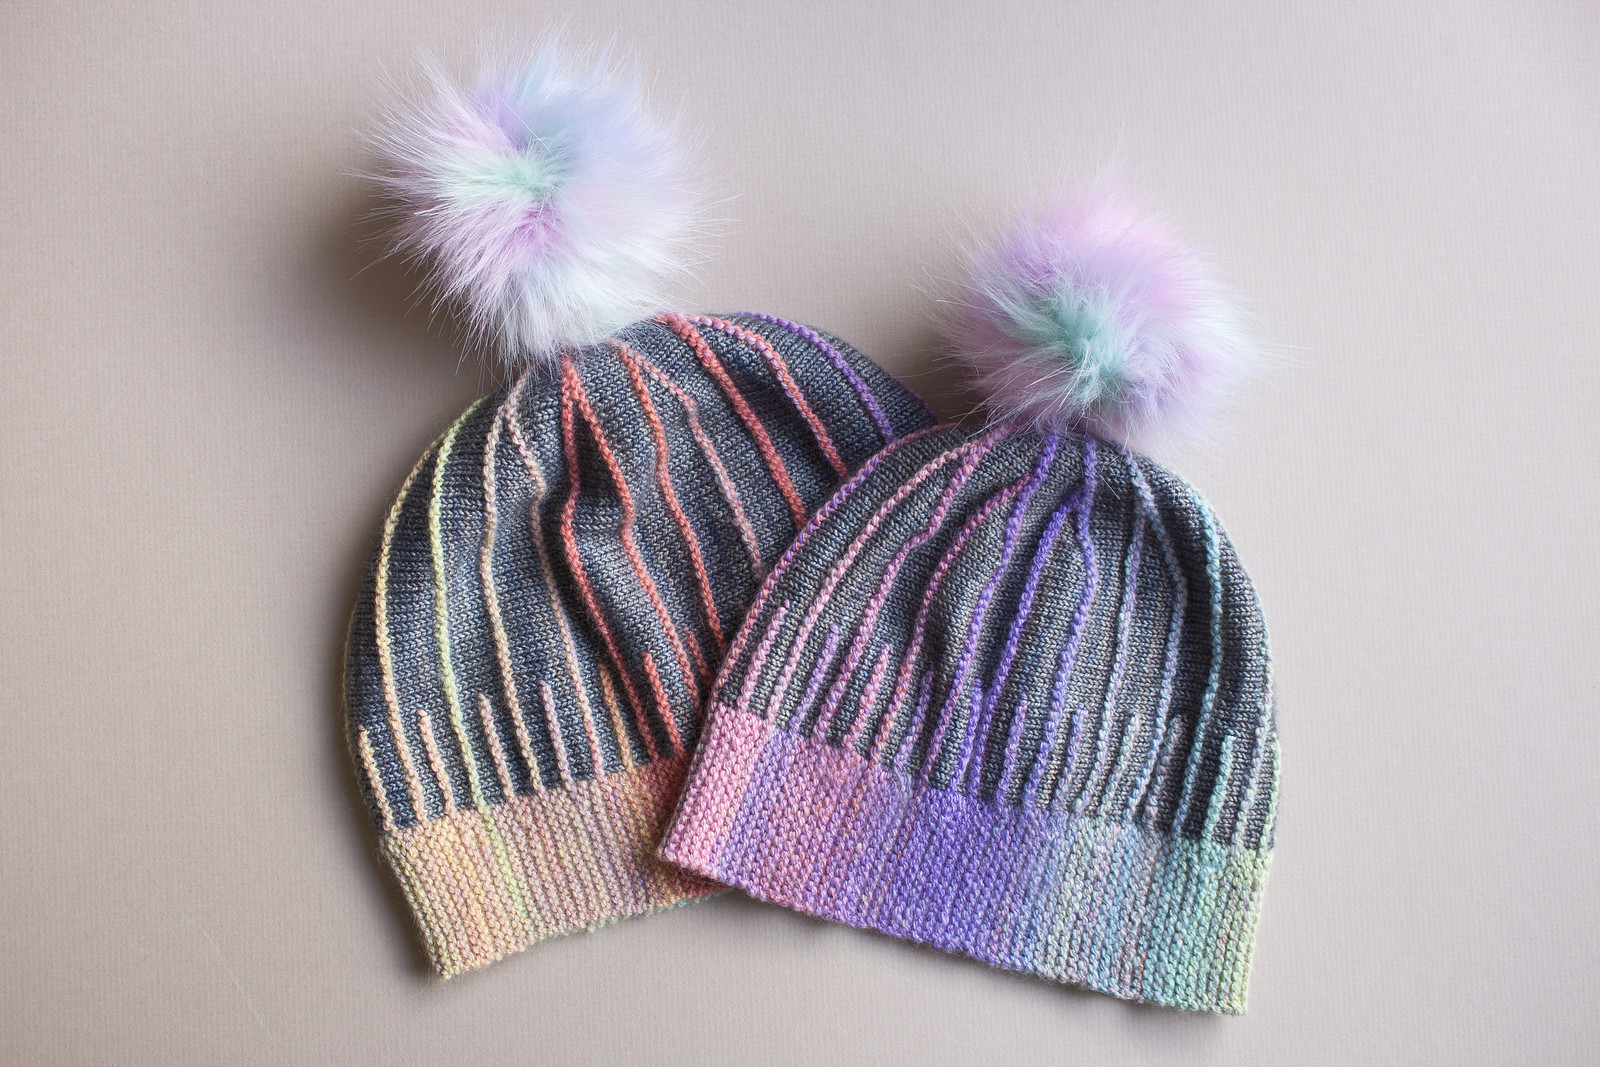 Two misura hats by Woolly Wormhead, knit by Mimi Codd from pastel handspun yarn and grey